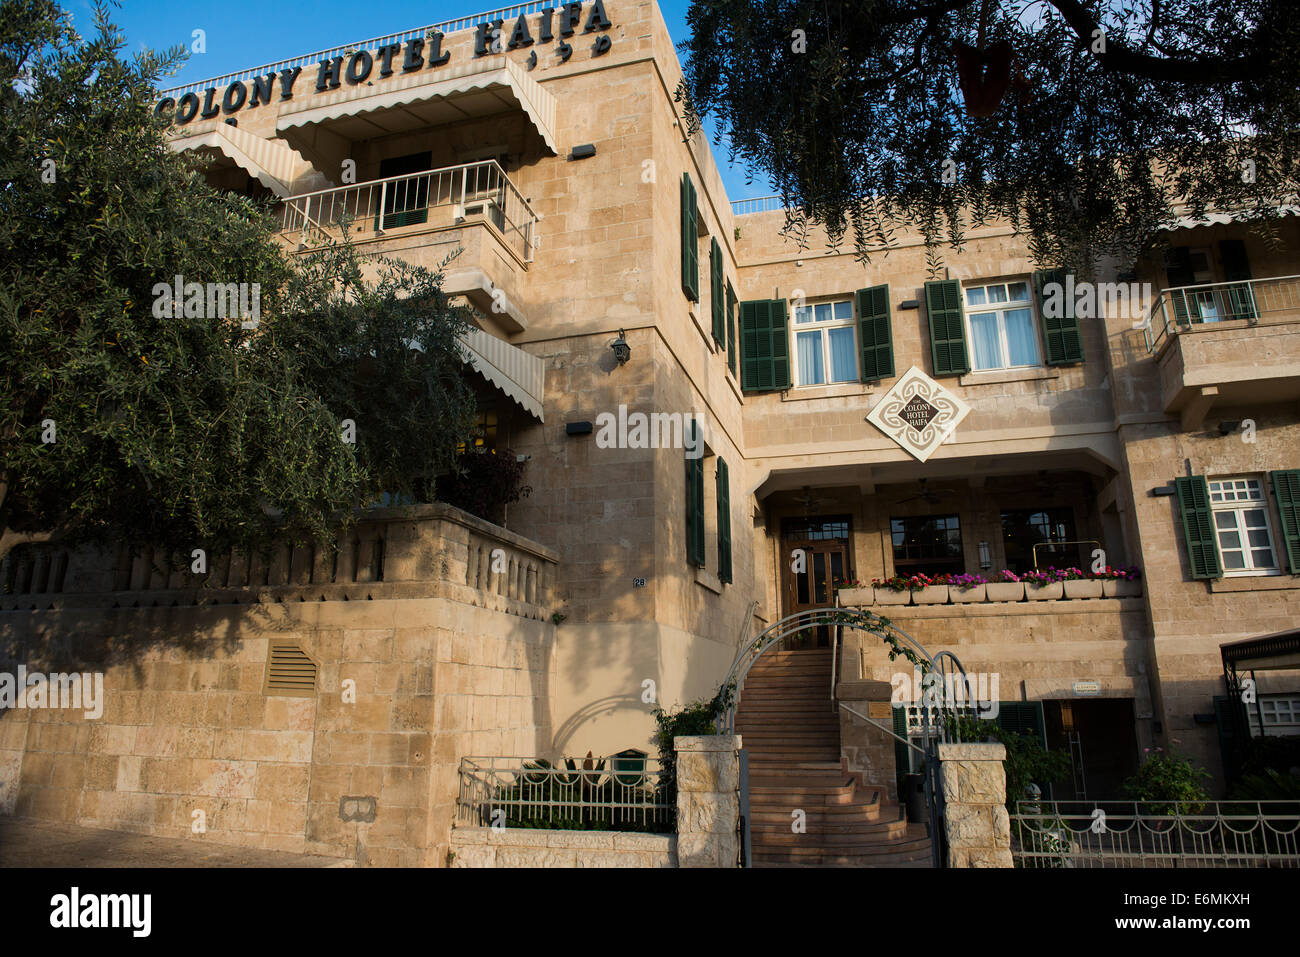 The colony hotel in Haifa is one of the finest boutique hotels in the city. - Stock Image